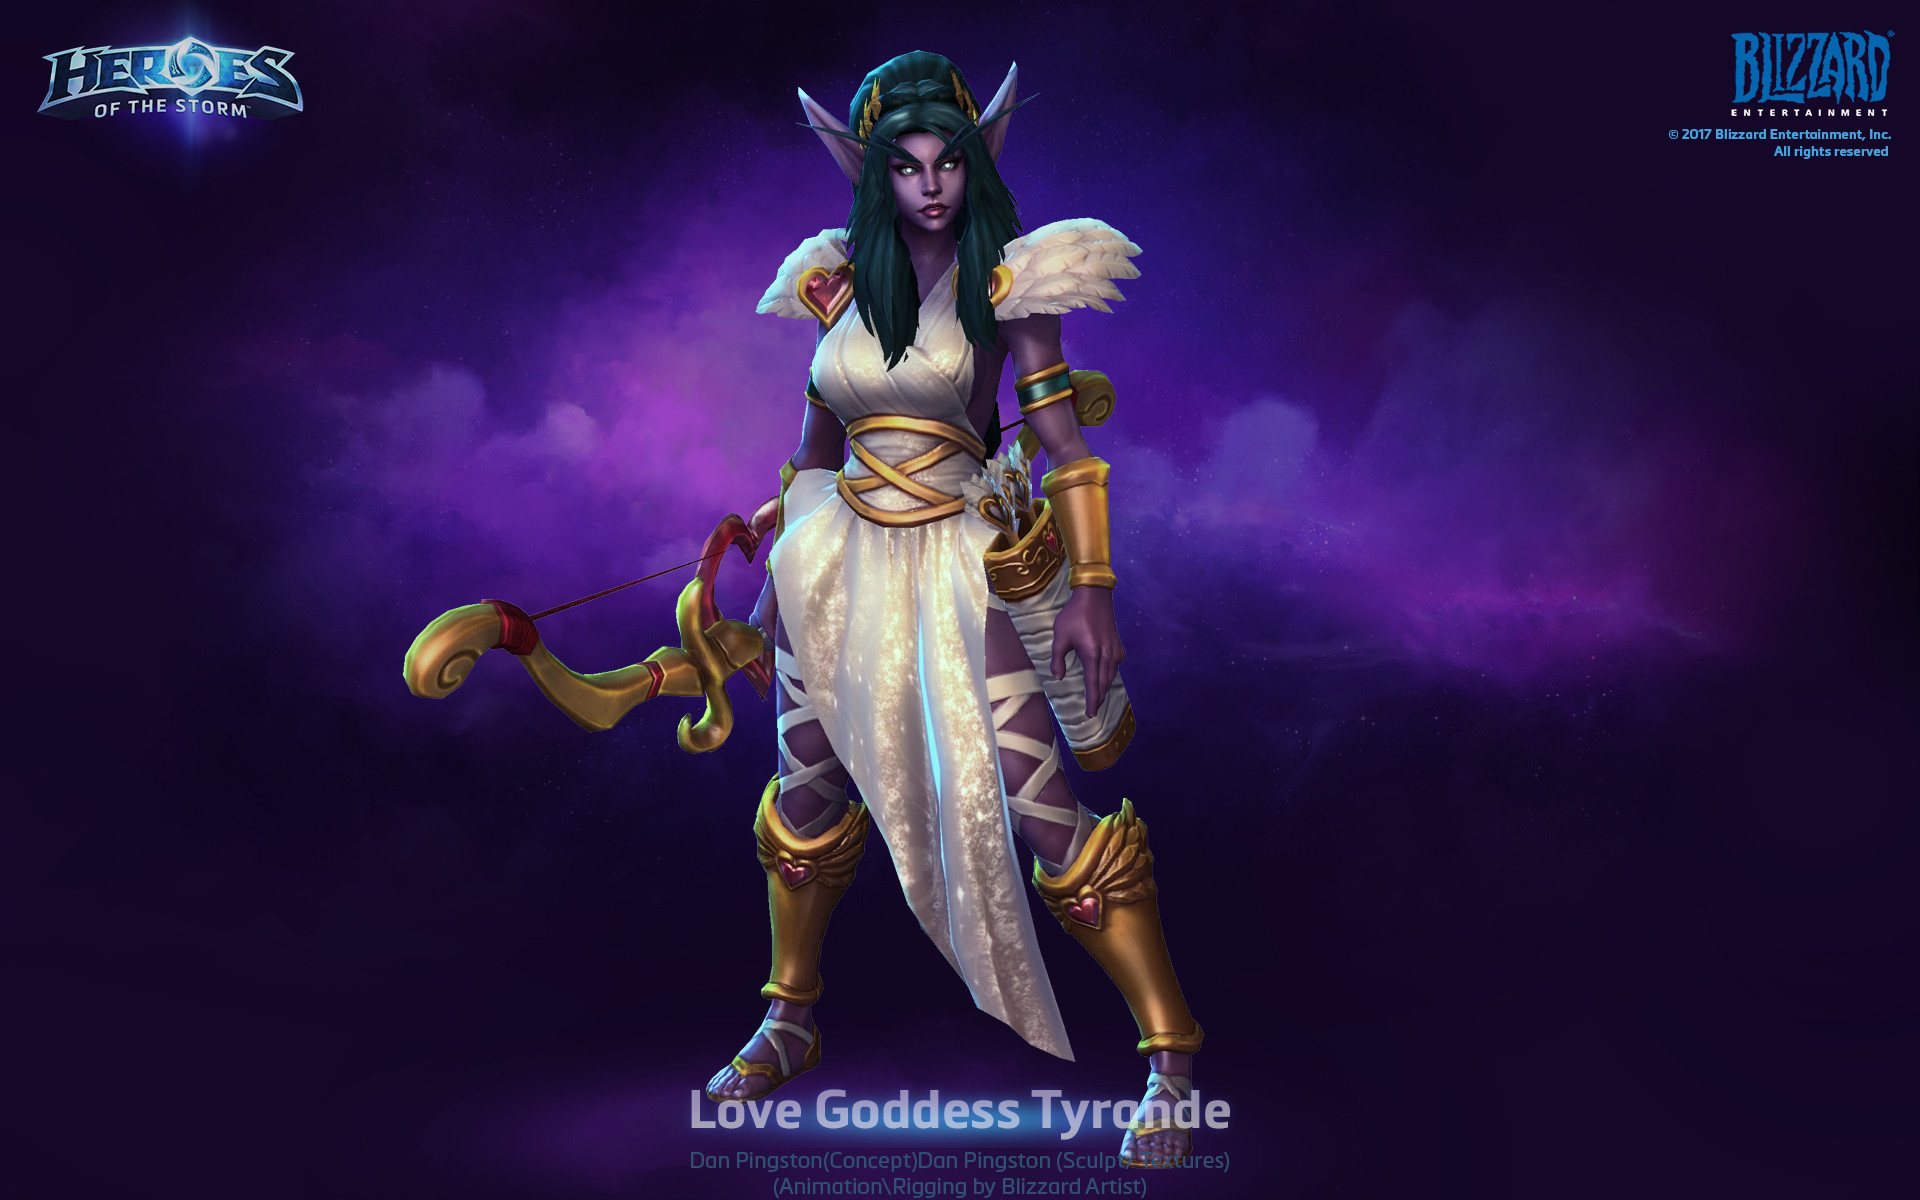 Dan pingston dan pingston lovegoddesss tyrande hots1